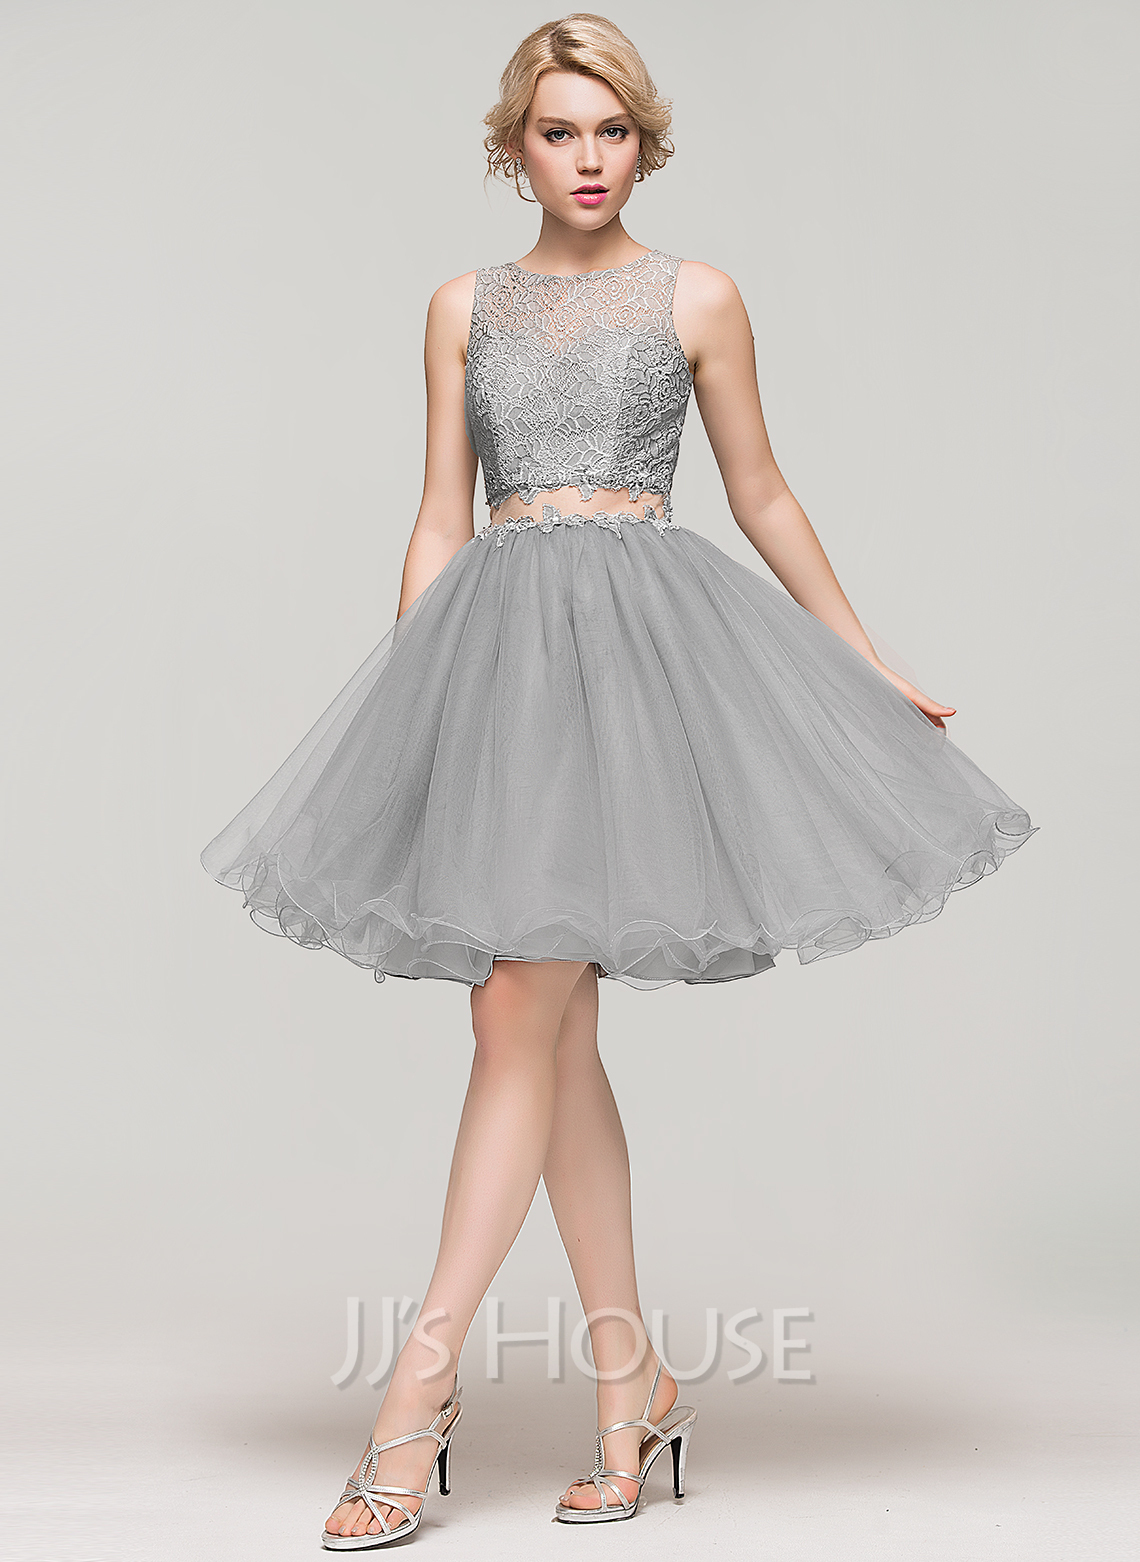 208073c58f4a A-Line/Princess Scoop Neck Knee-Length Tulle Lace Cocktail Dress With  Beading. Loading zoom